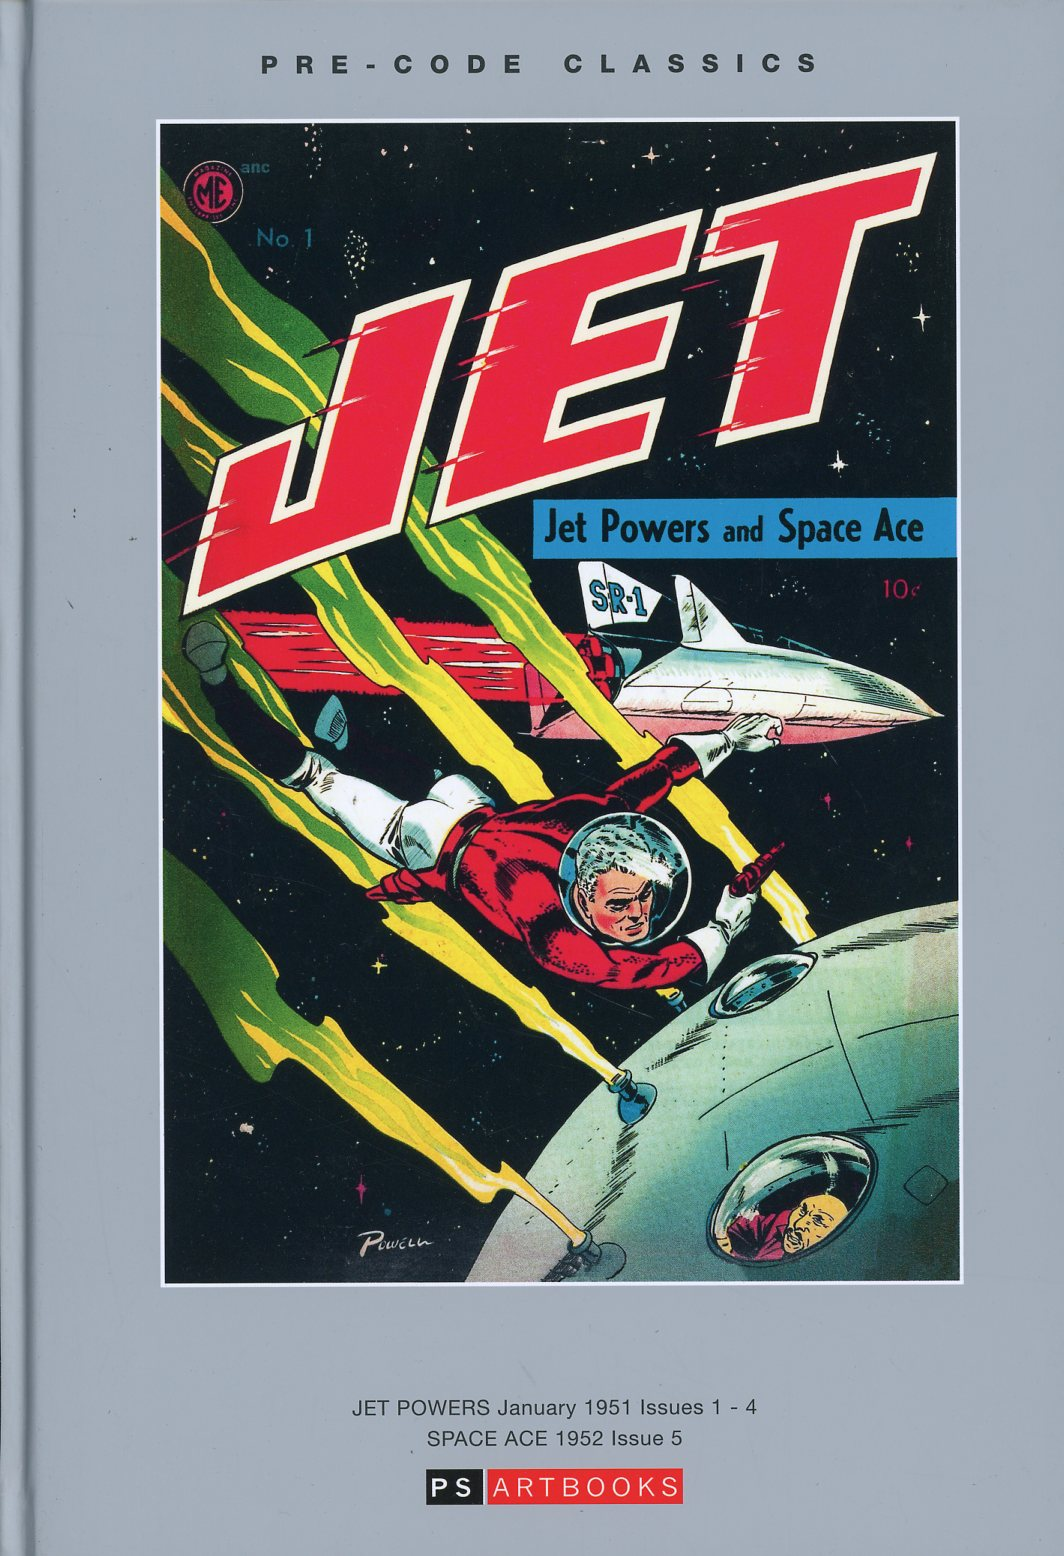 Pre-Code Classics Jet Powers And Space Ace Vol 1 HC